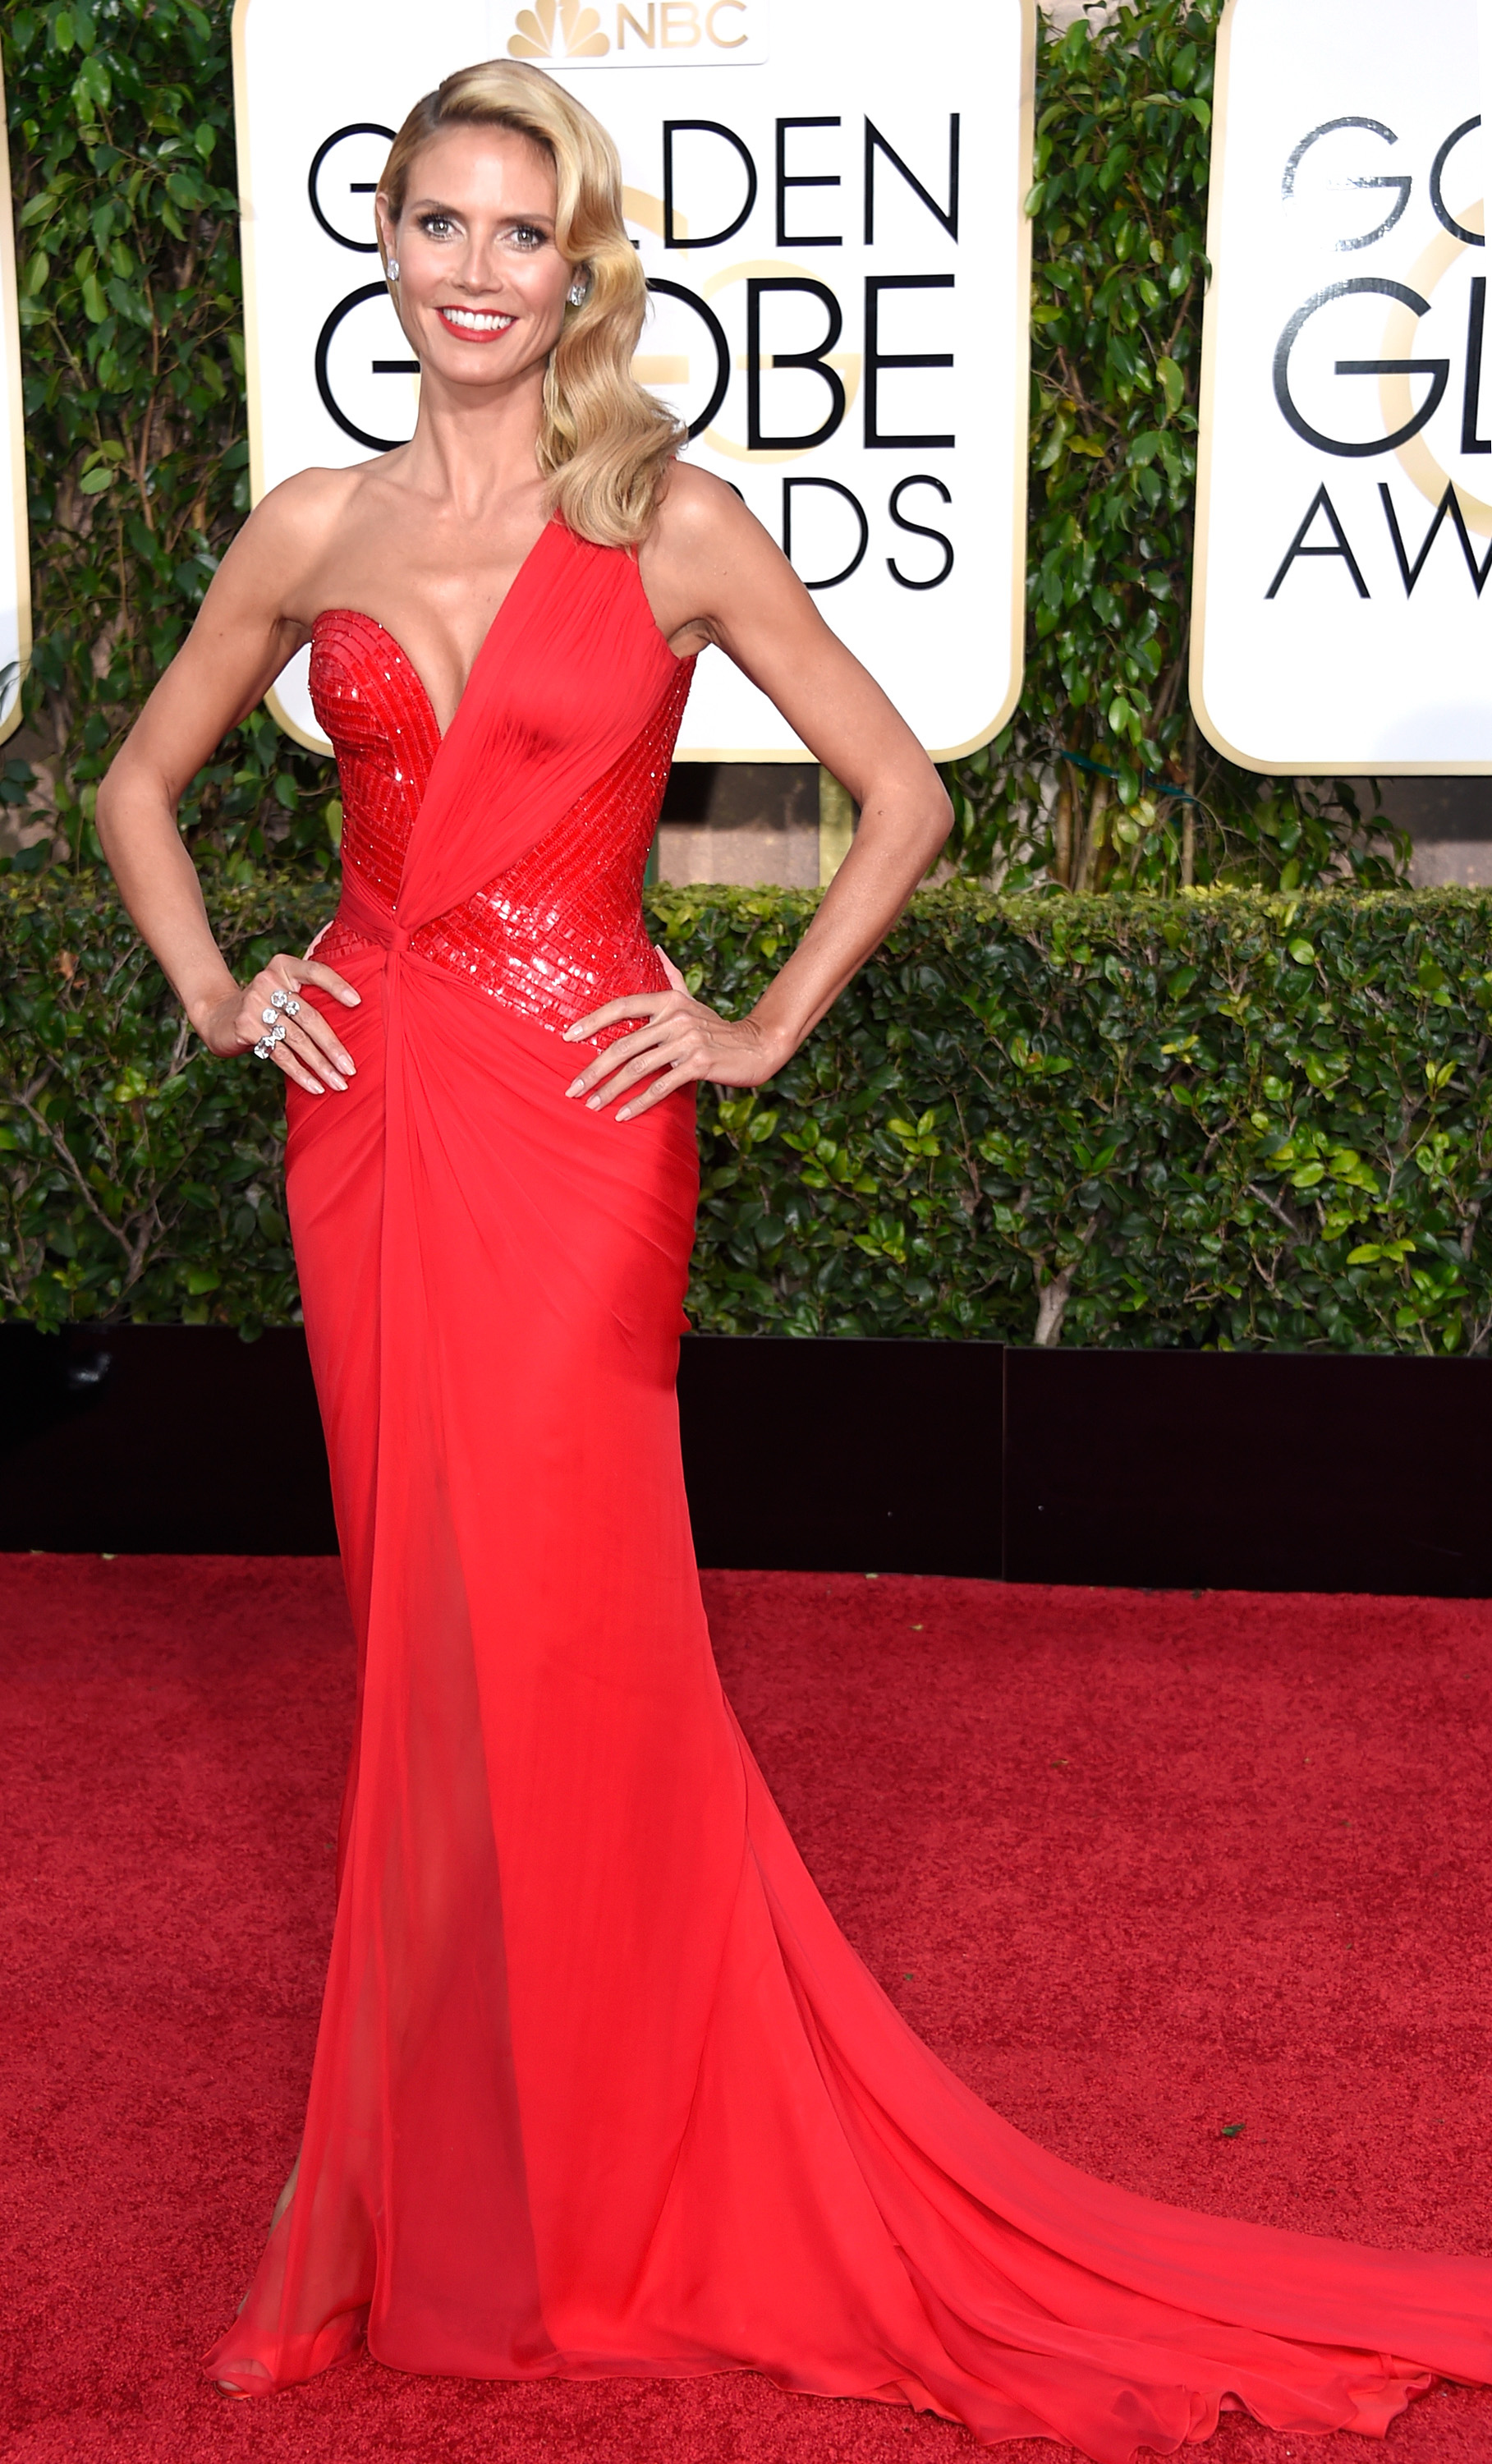 Model/TV personality Heidi Klum attends the 72nd Annual Golden Globe Awards at The Beverly Hilton Hotel in Beverly Hills, Calif., on January 11, 2015.